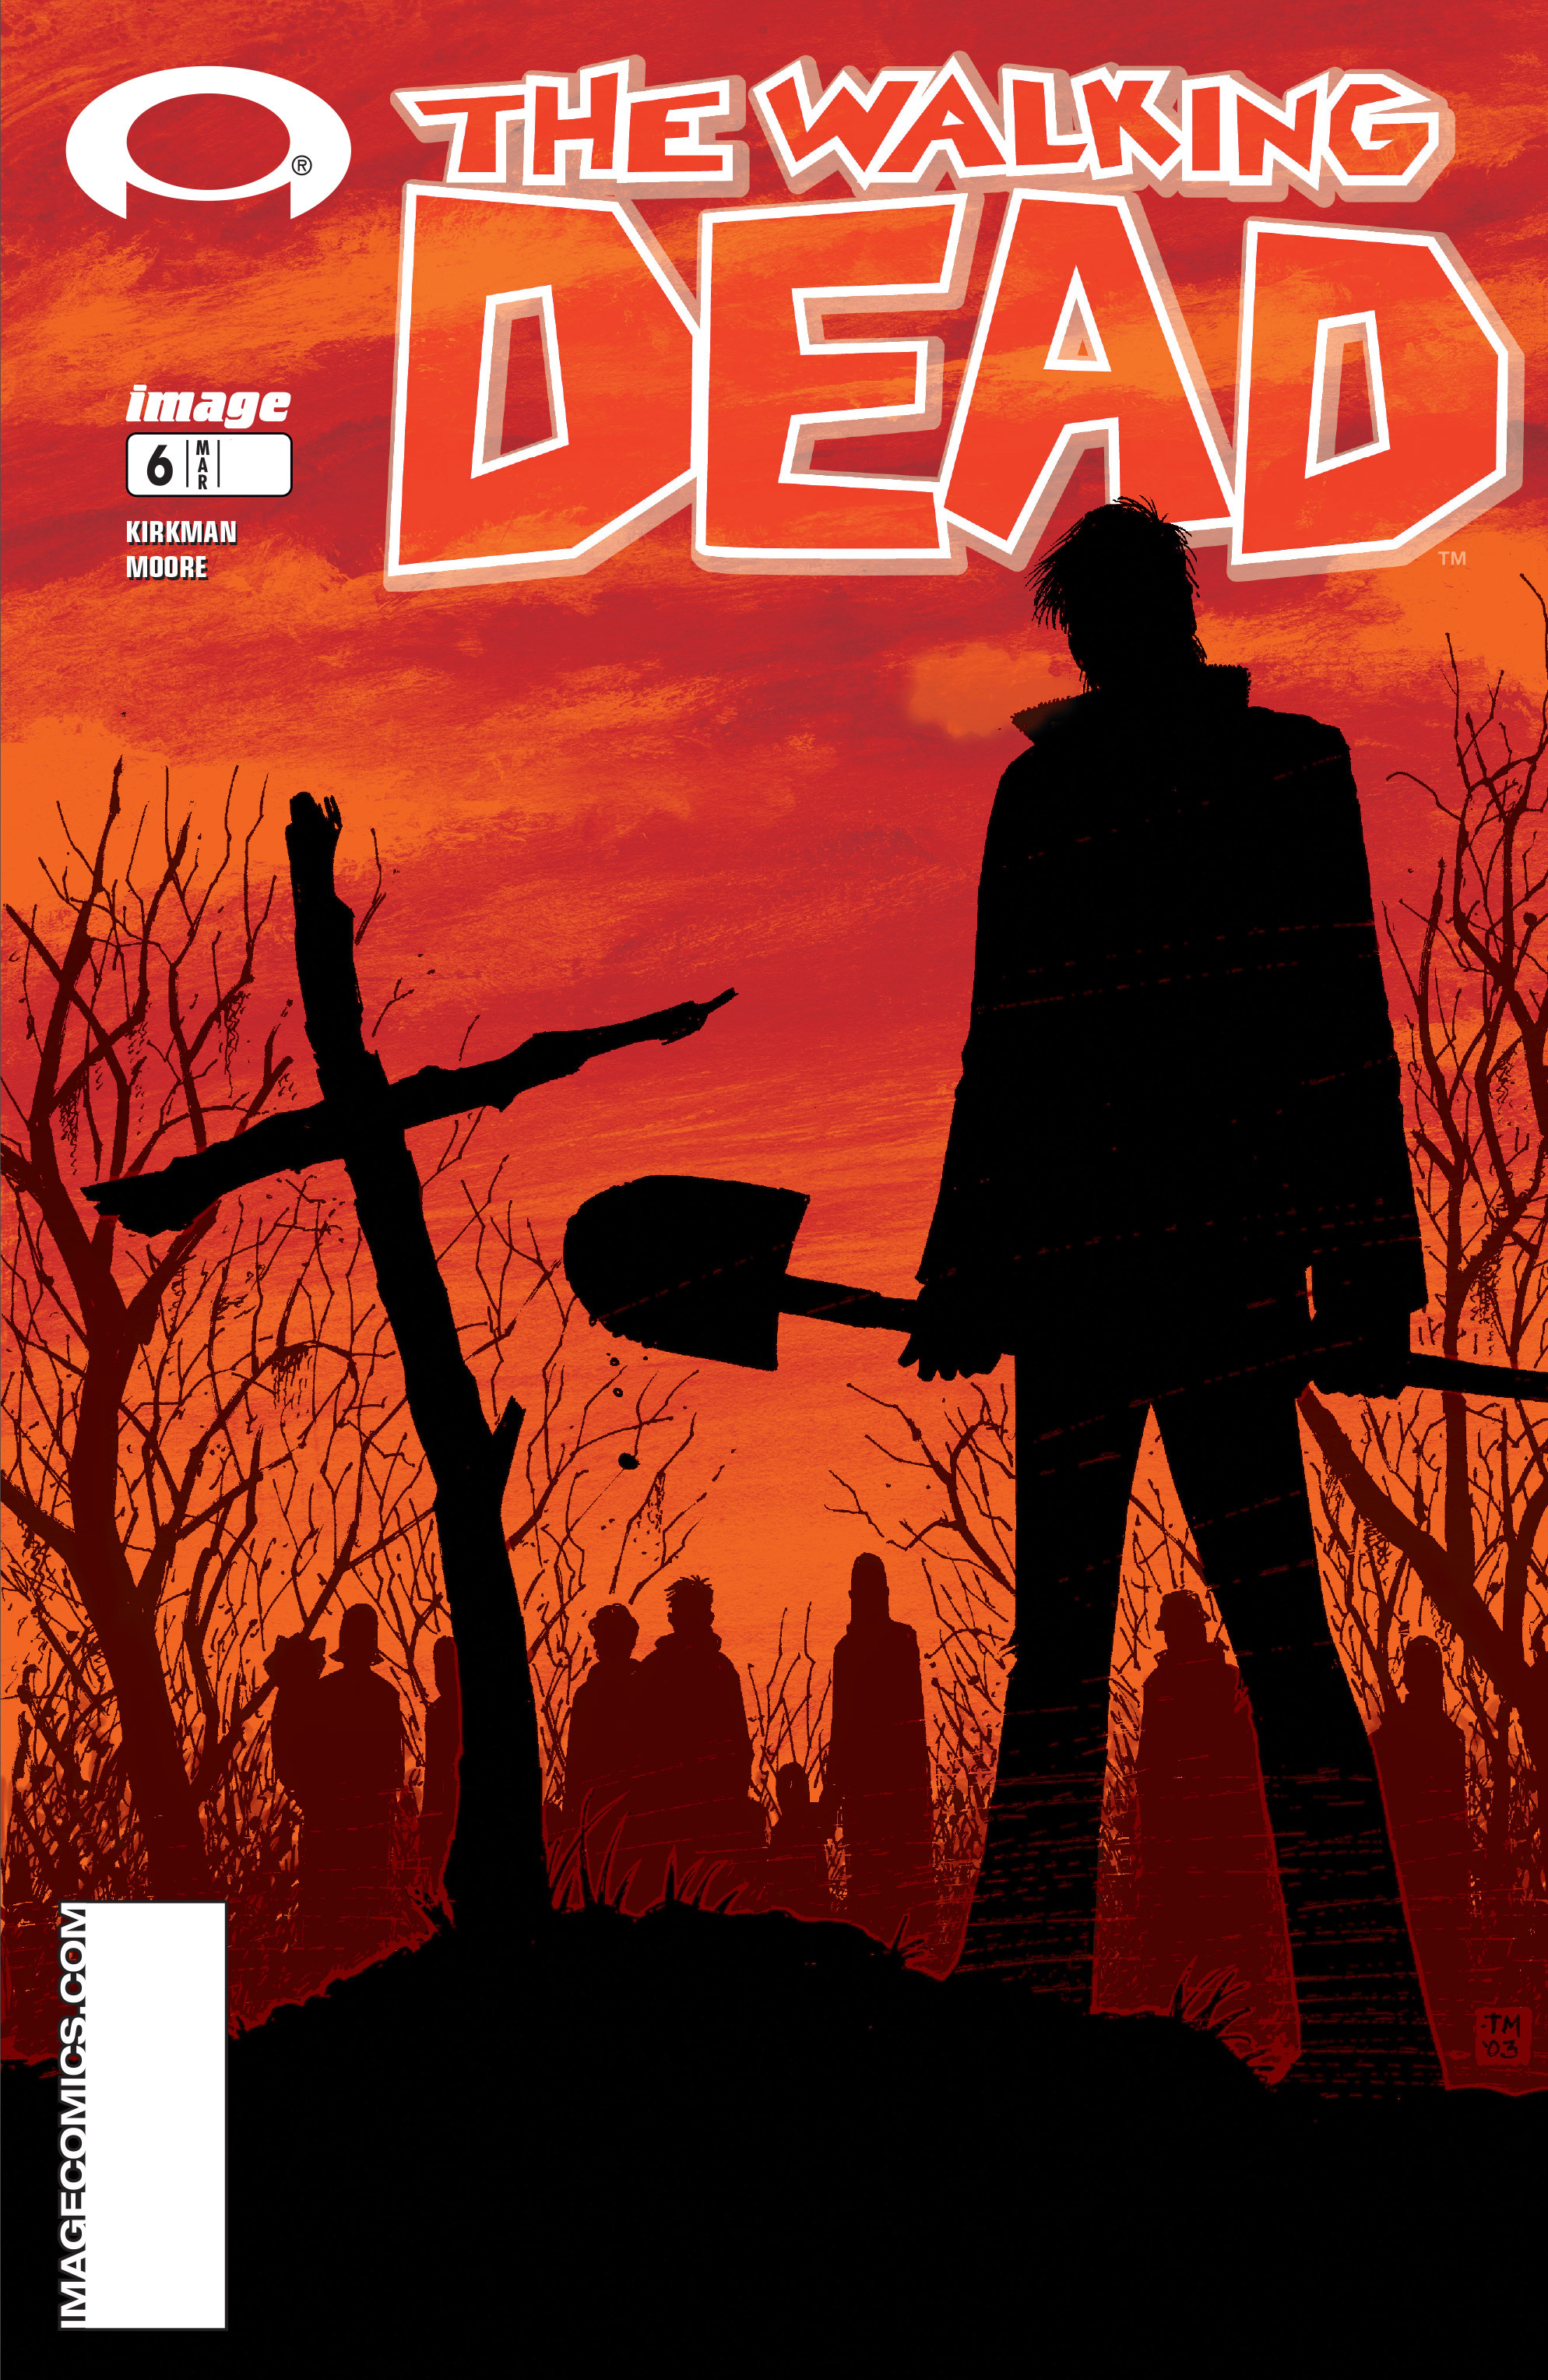 The Walking Dead 6 Page 1